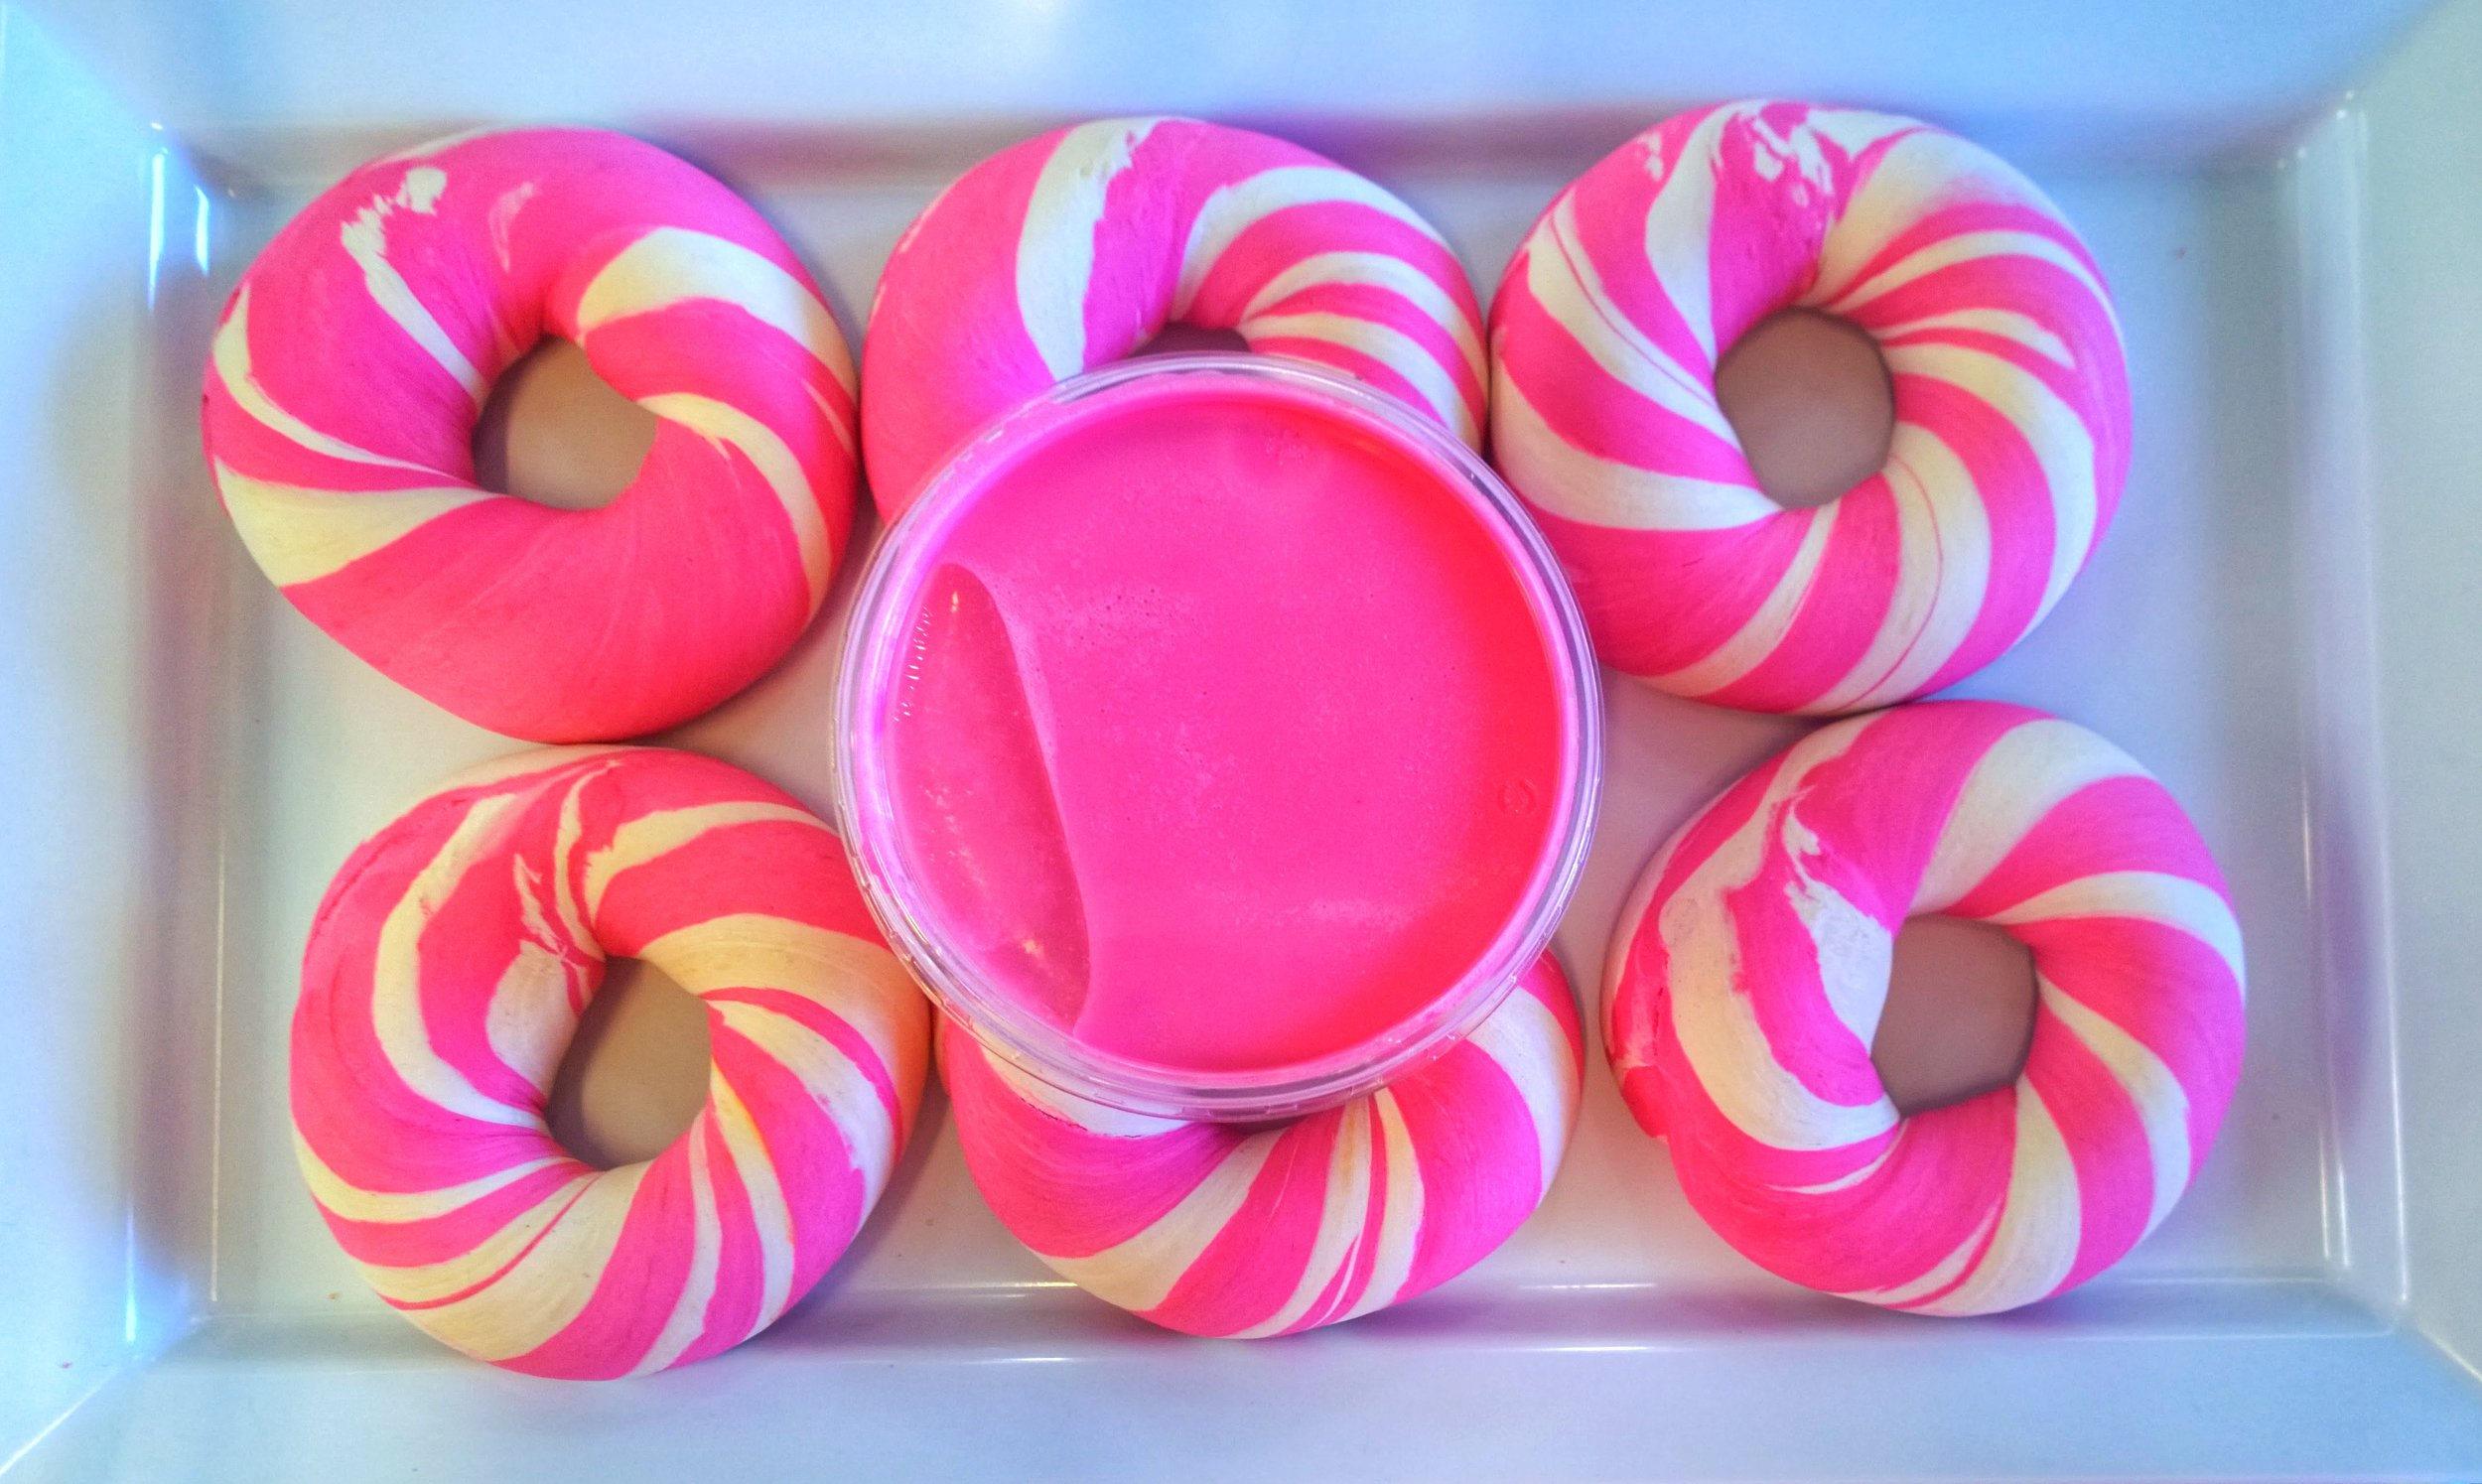 pink and white bagel with pink cream cheese